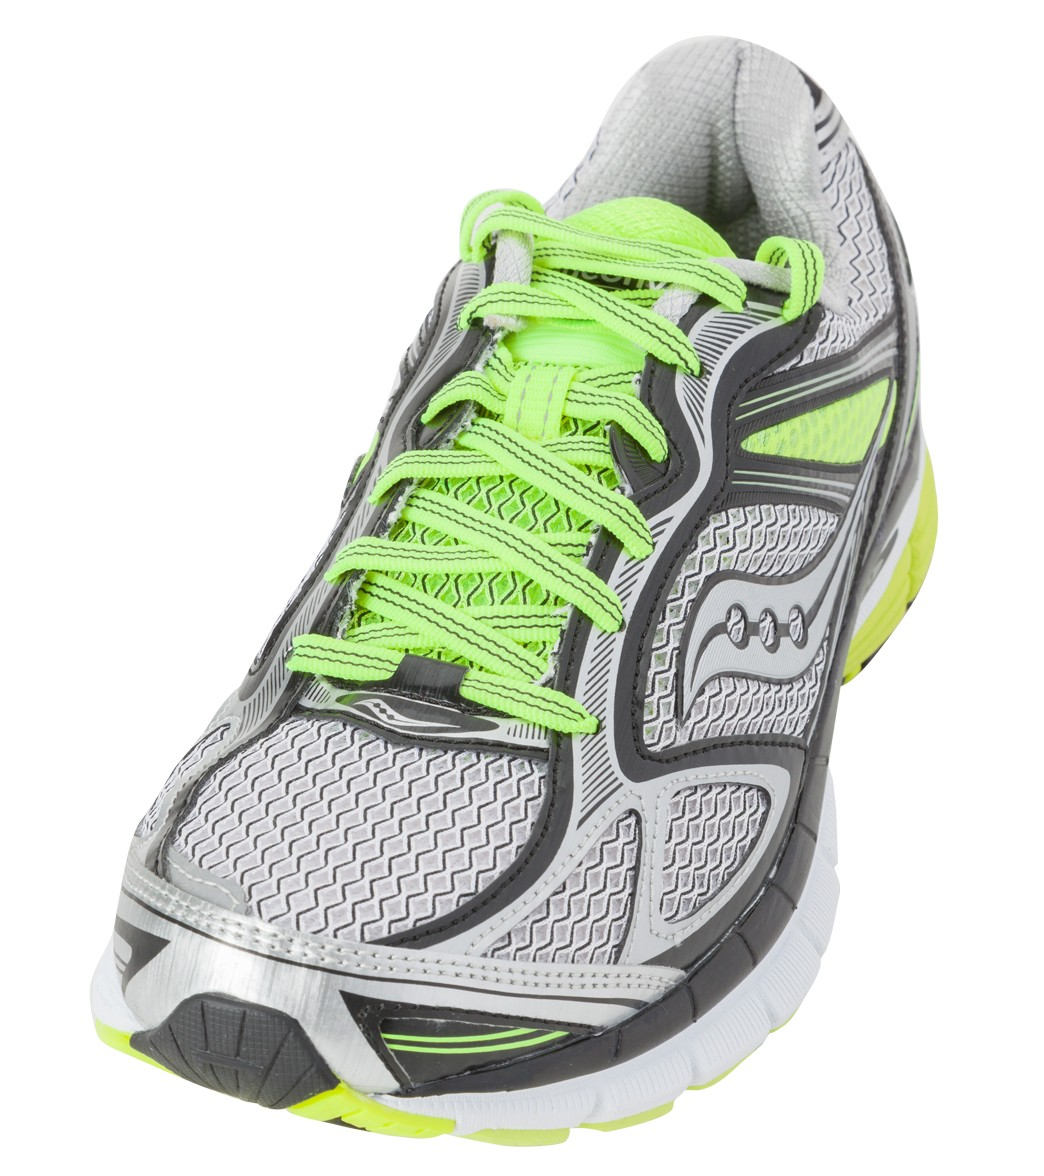 Shoes Men's Guide 7 At Saucony Free Shipping Running Ee29YWbHID